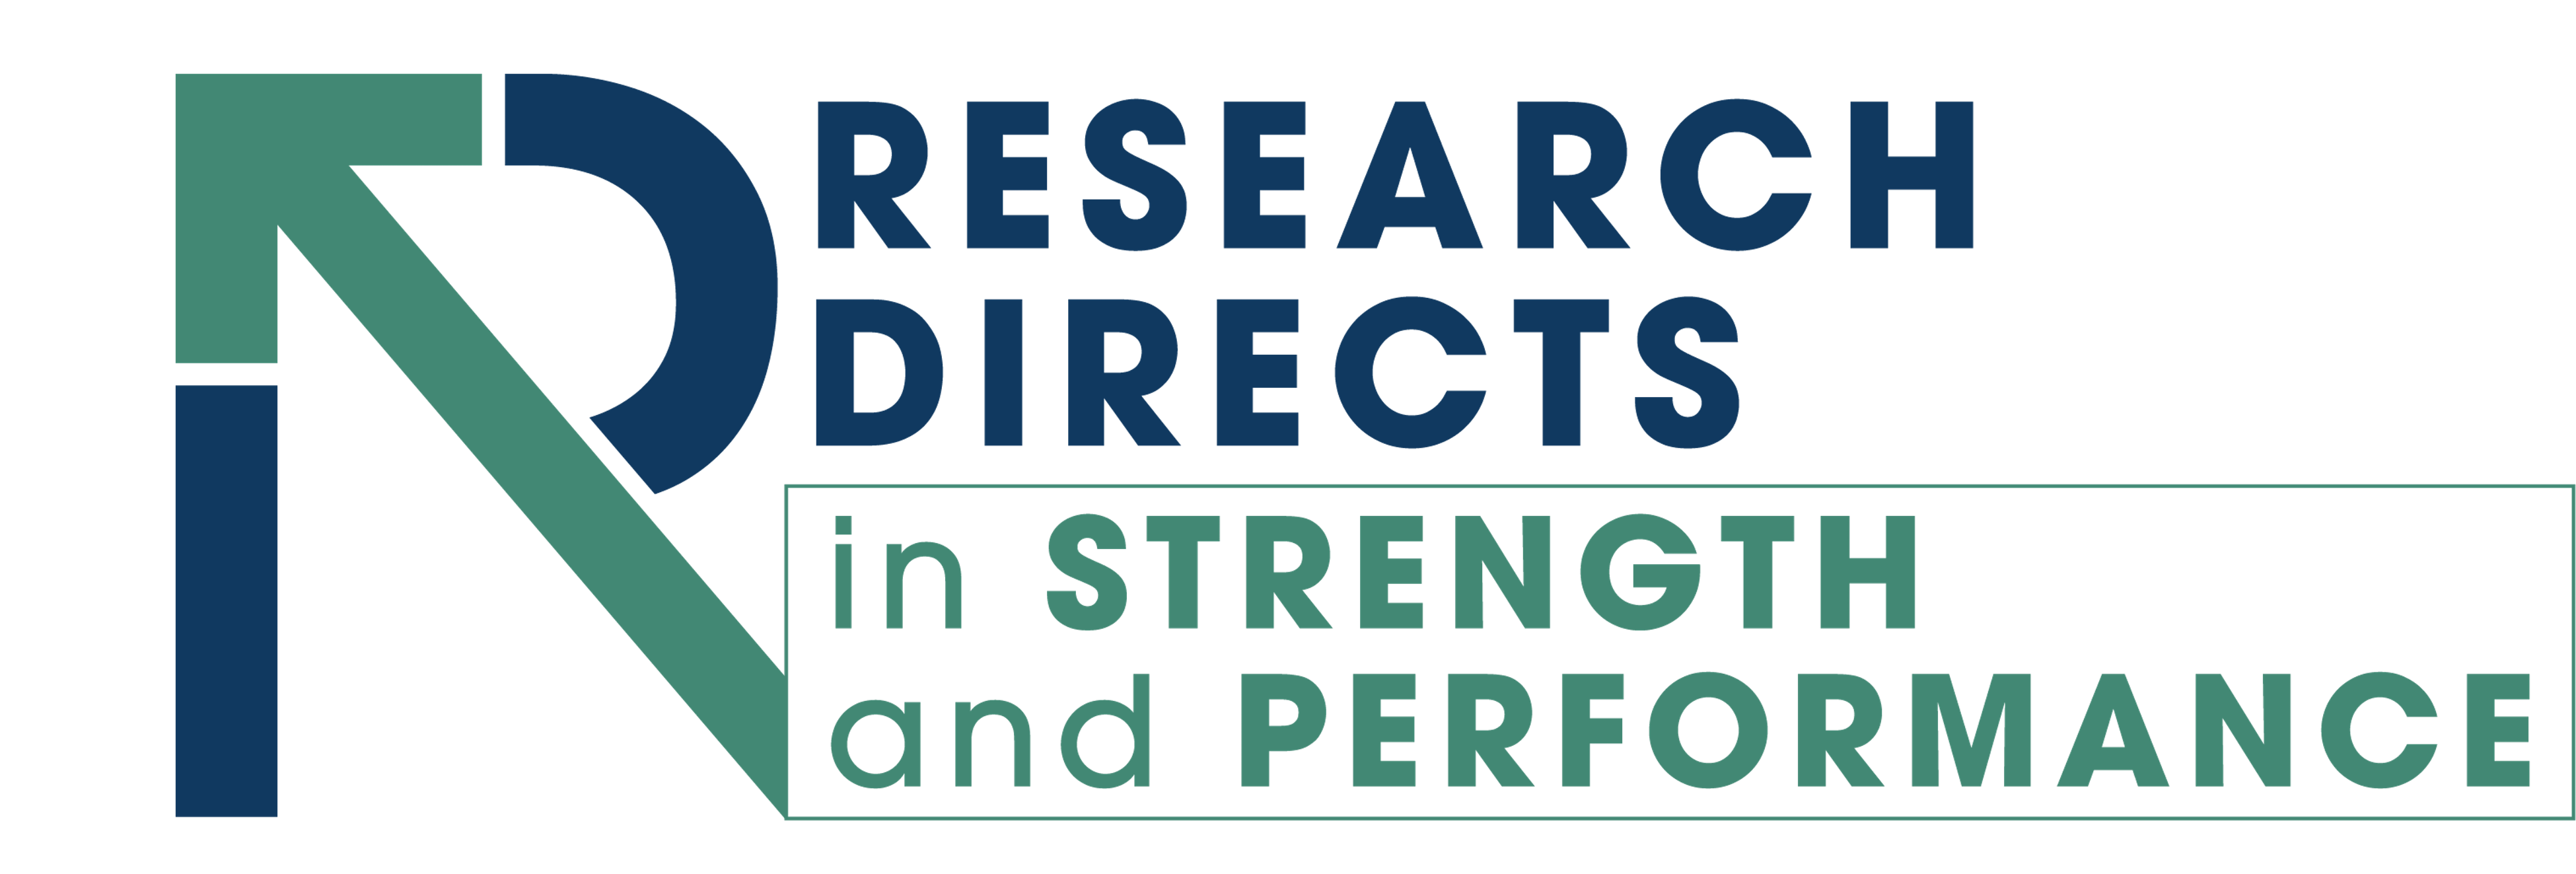 Research Directs in Strength and Performance